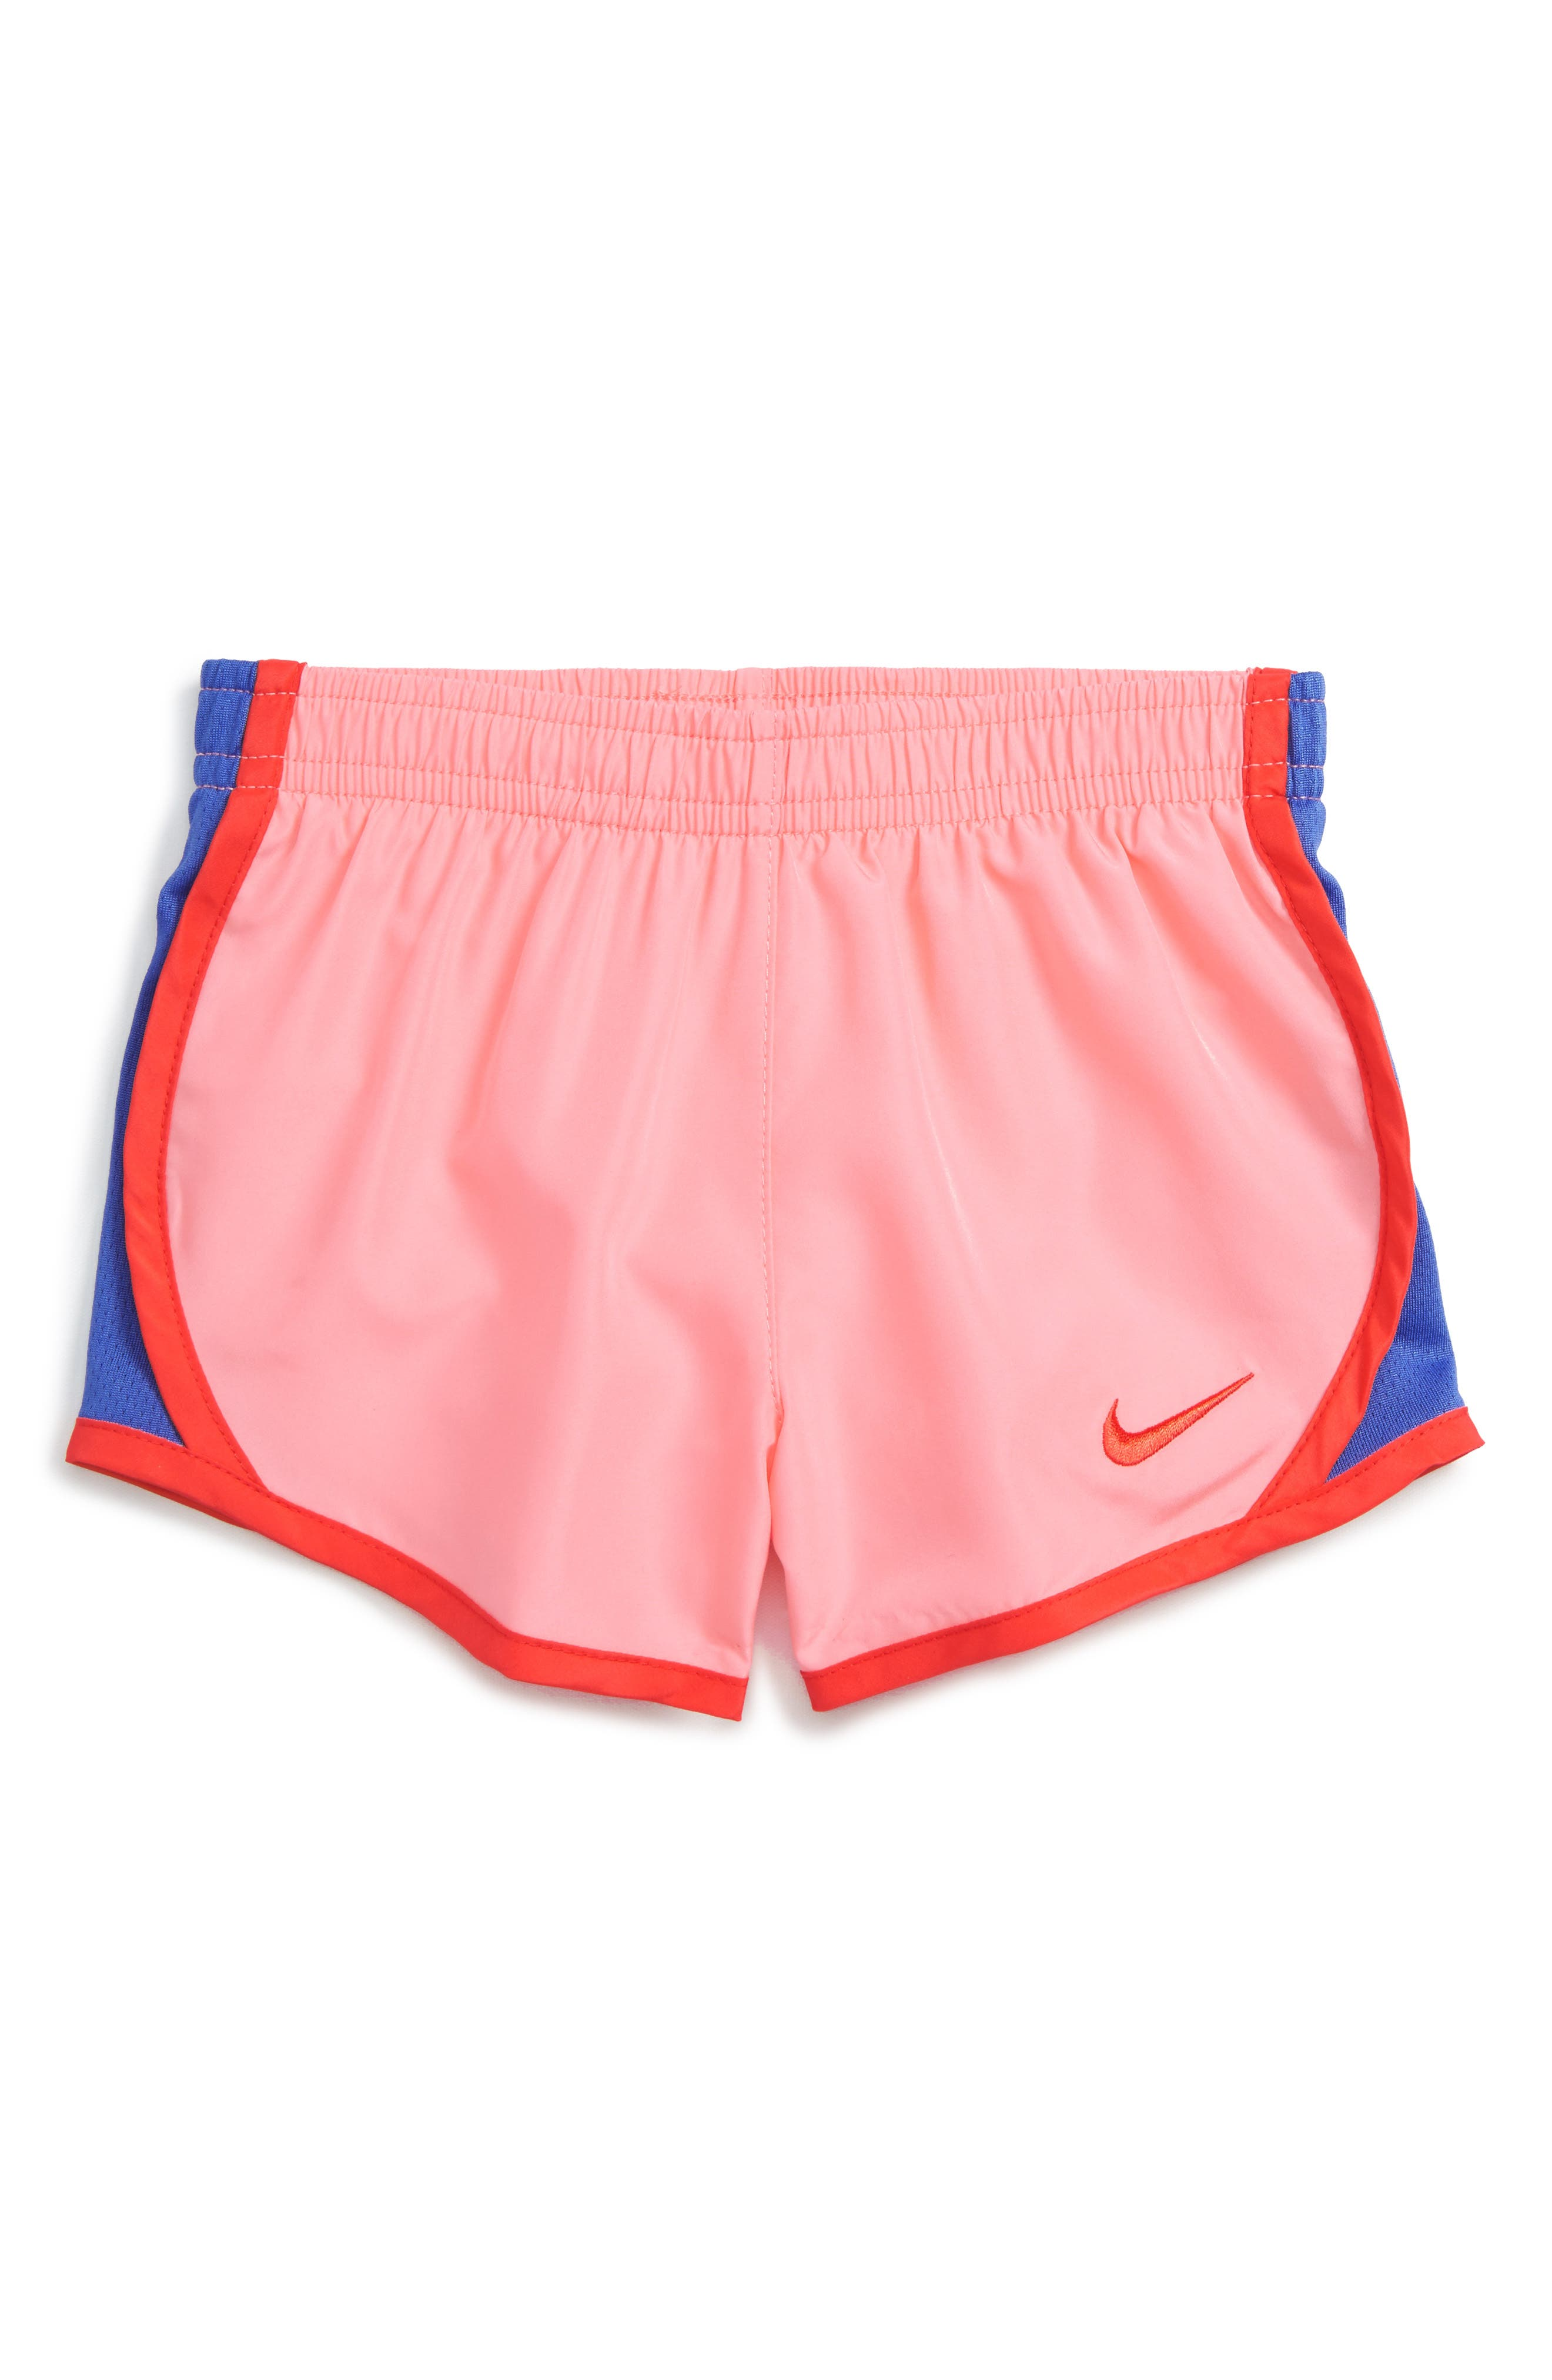 Tempo Dri-FIT Shorts,                         Main,                         color, Candy Pink